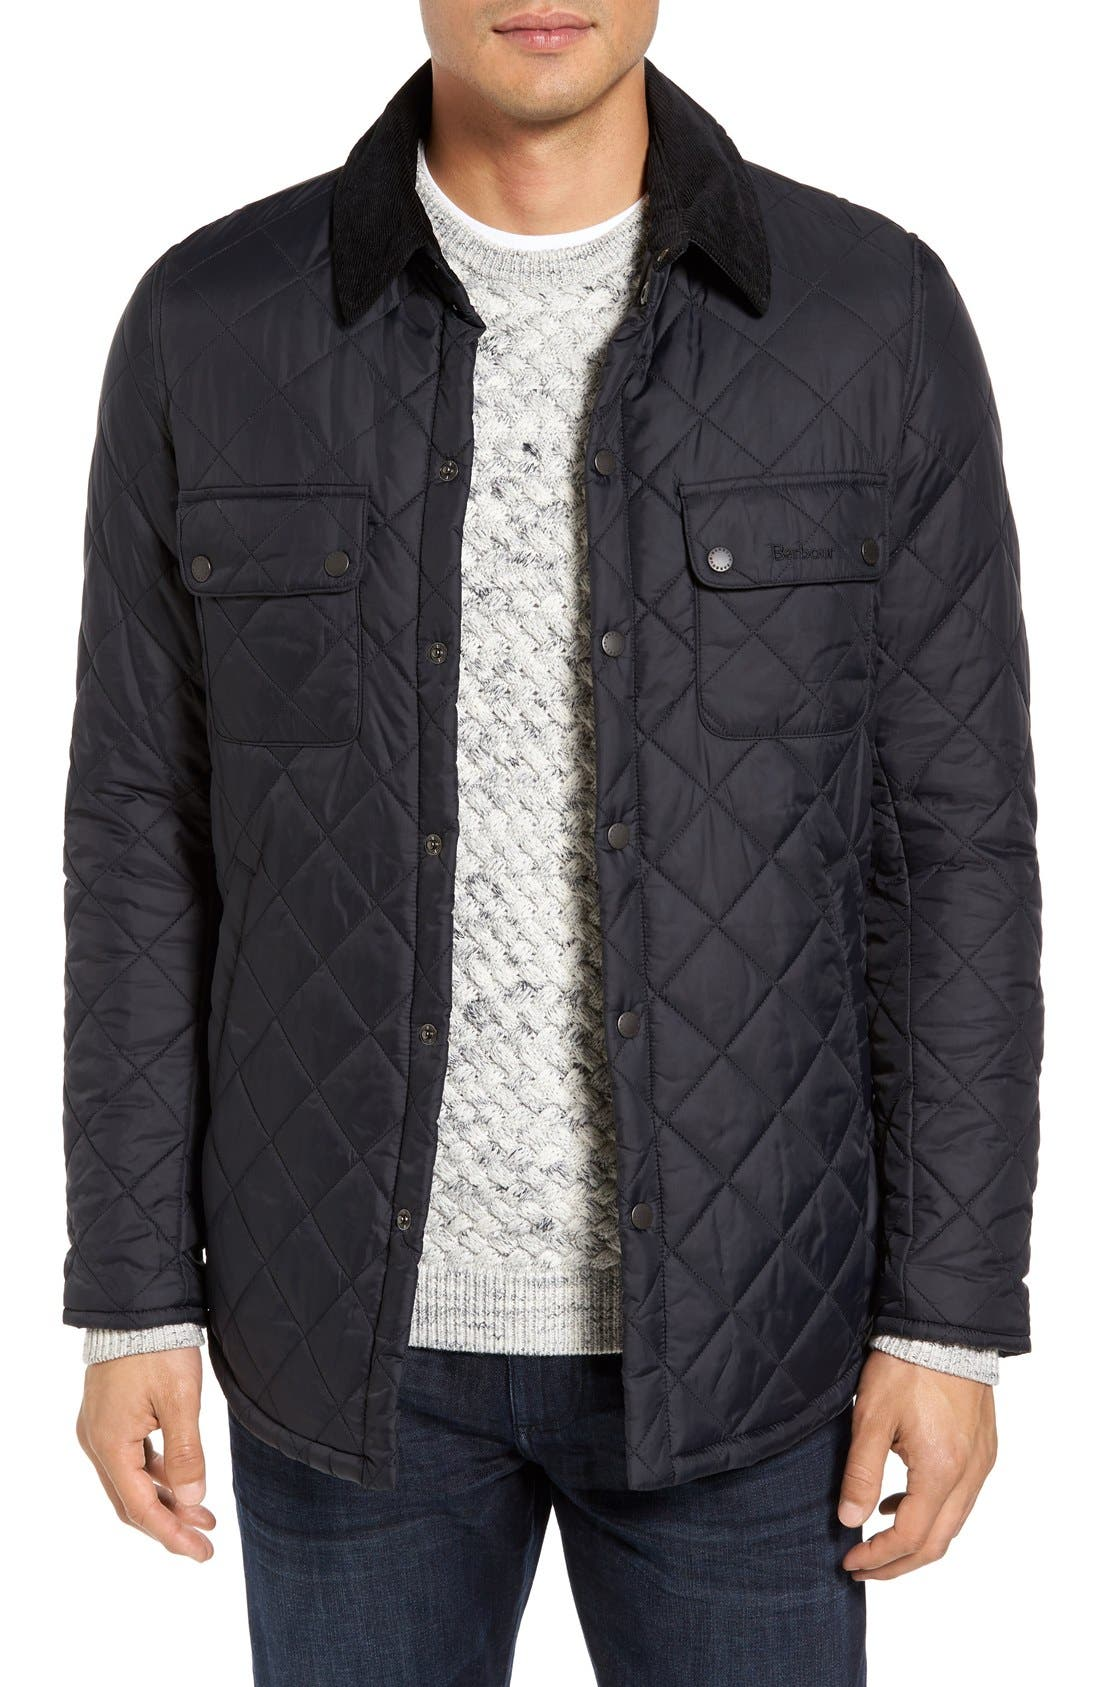 'Akenside' Regular Fit Quilted Jacket,                             Main thumbnail 1, color,                             001